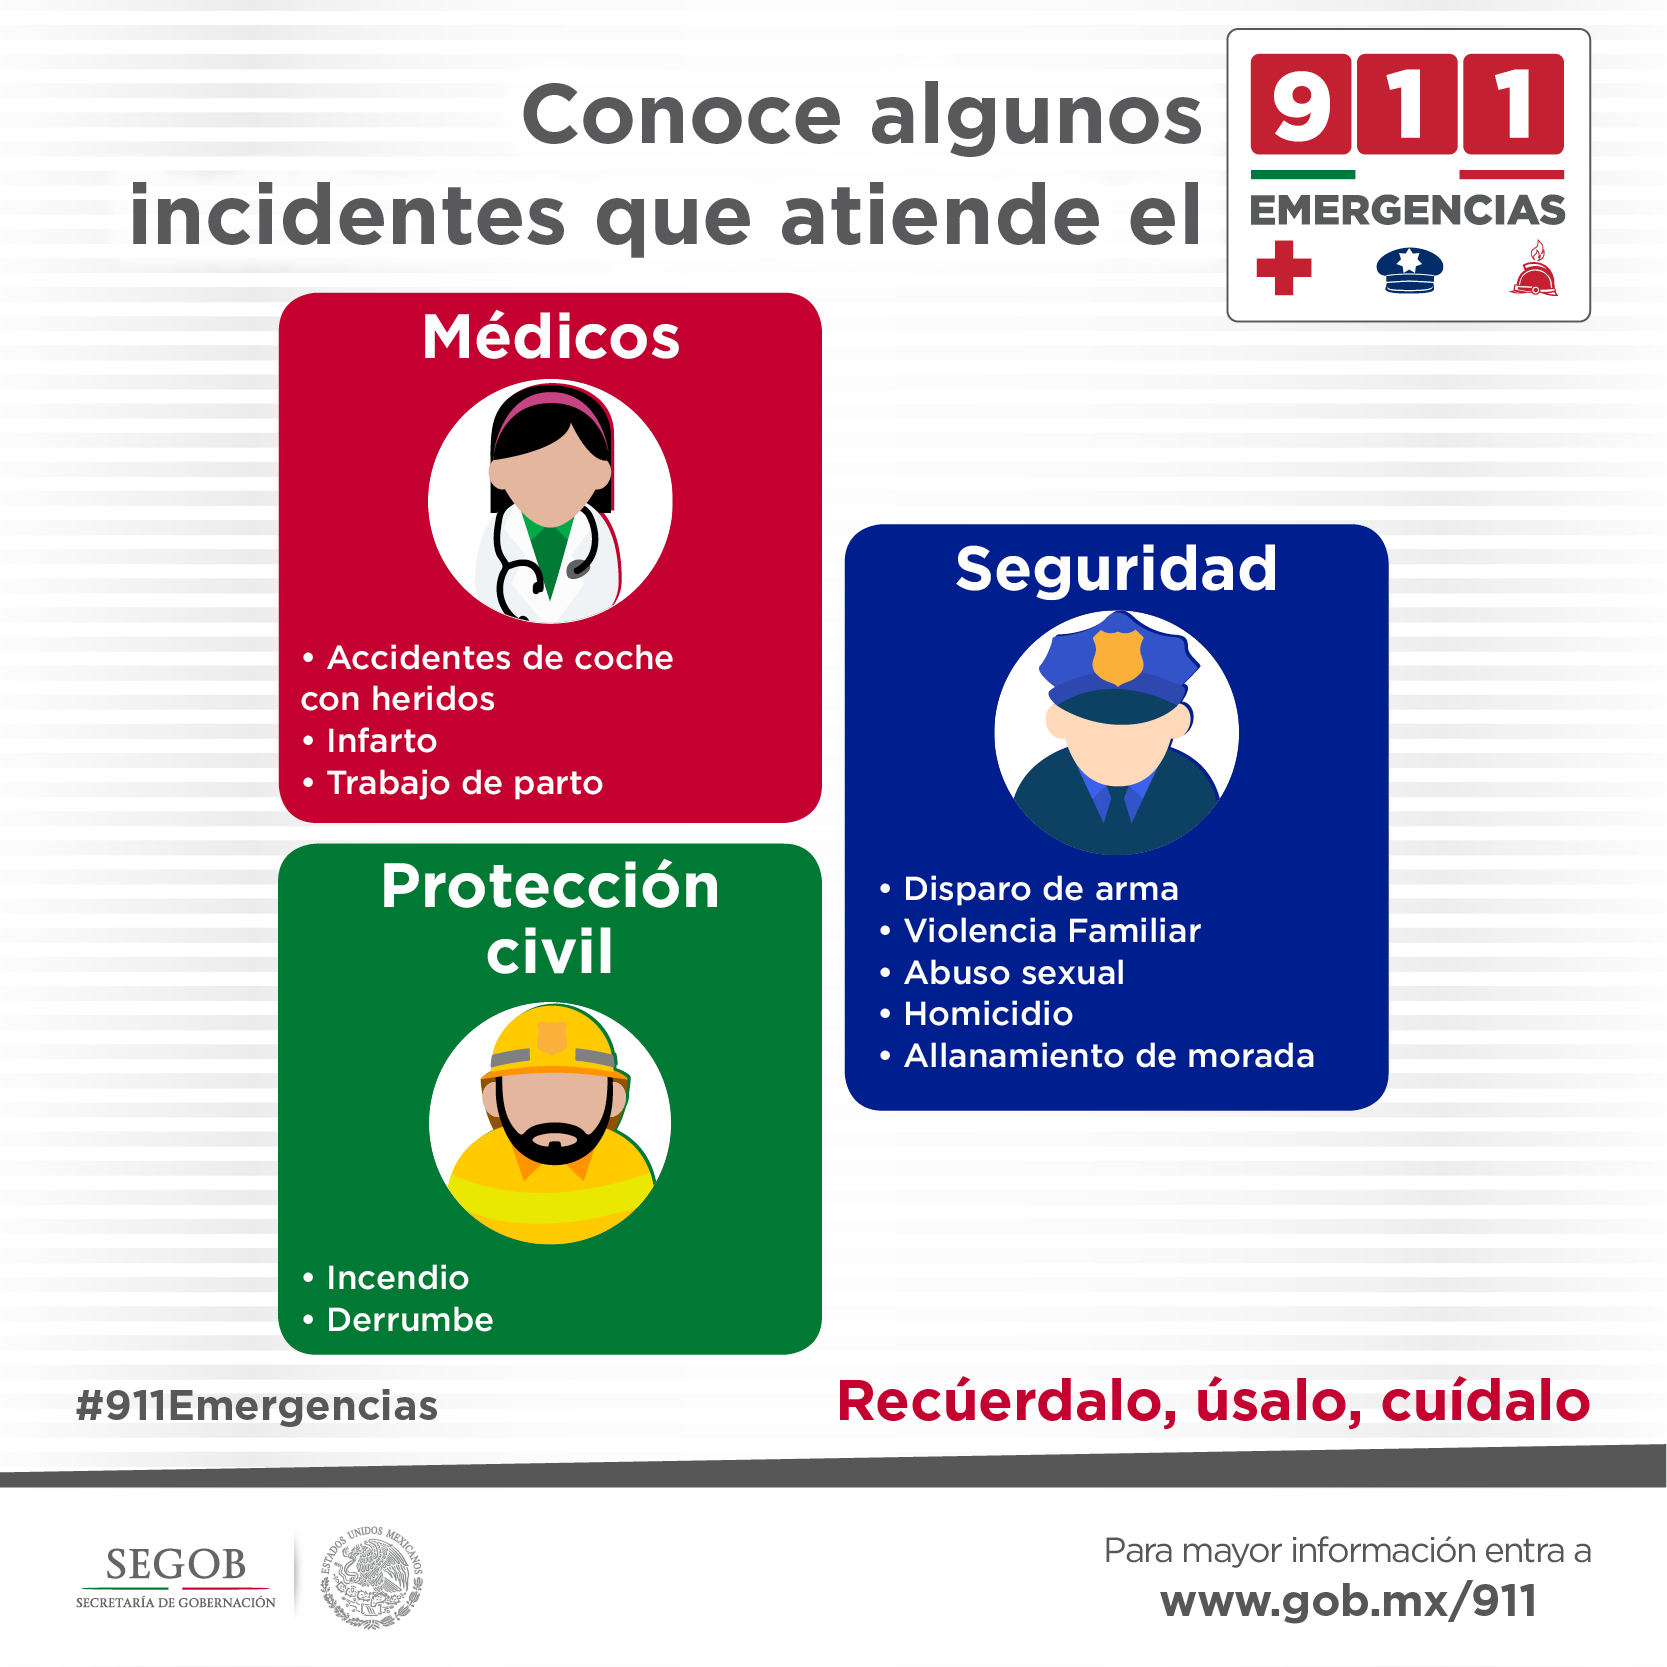 /cms/uploads/image/file/239400/IN007_Incidentes-atiende-911.png